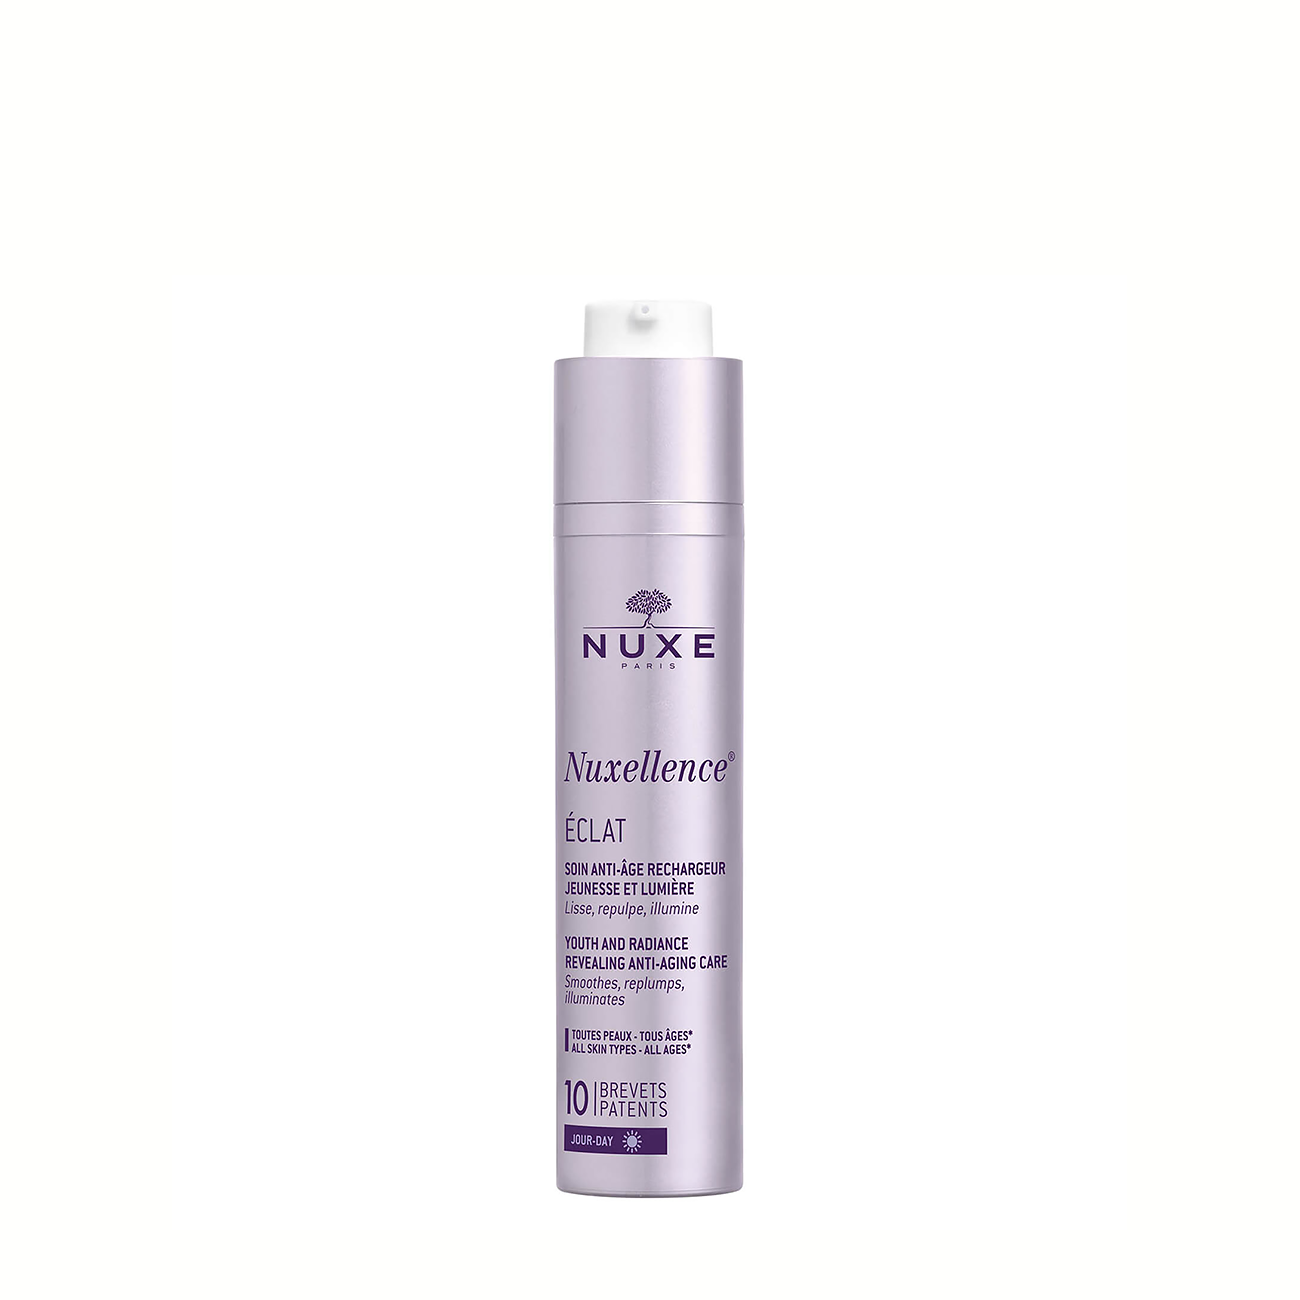 NUXELLENCE - ECLAT YOUTH AND RADIANCE REVEALING ANTI-AGING CARE 50ml imagine produs